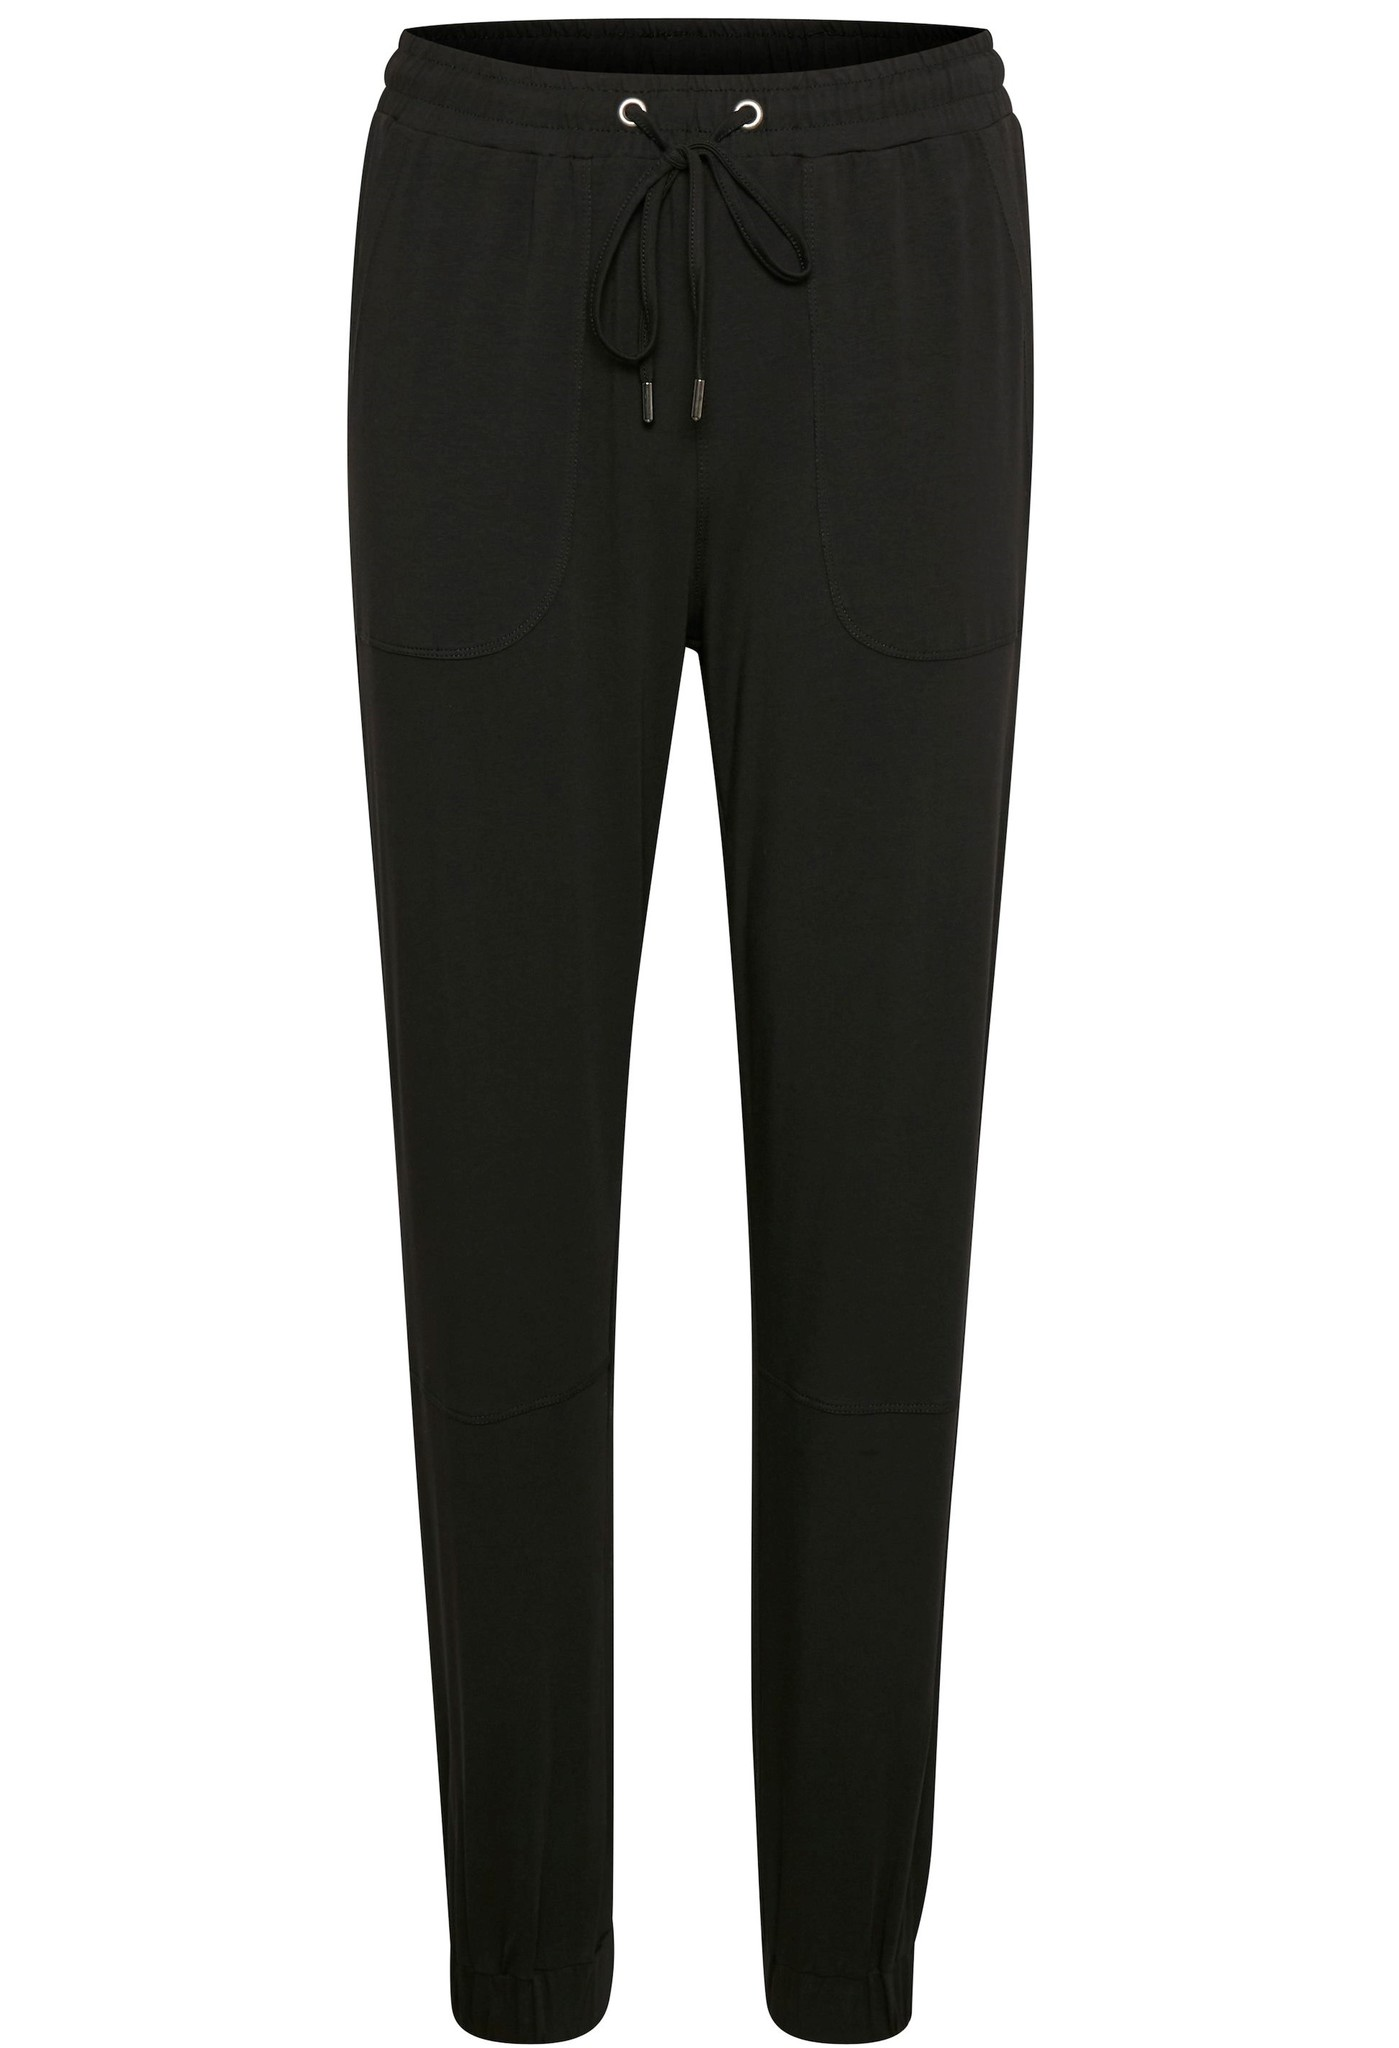 Broek KAdana Linda pants black deep-2